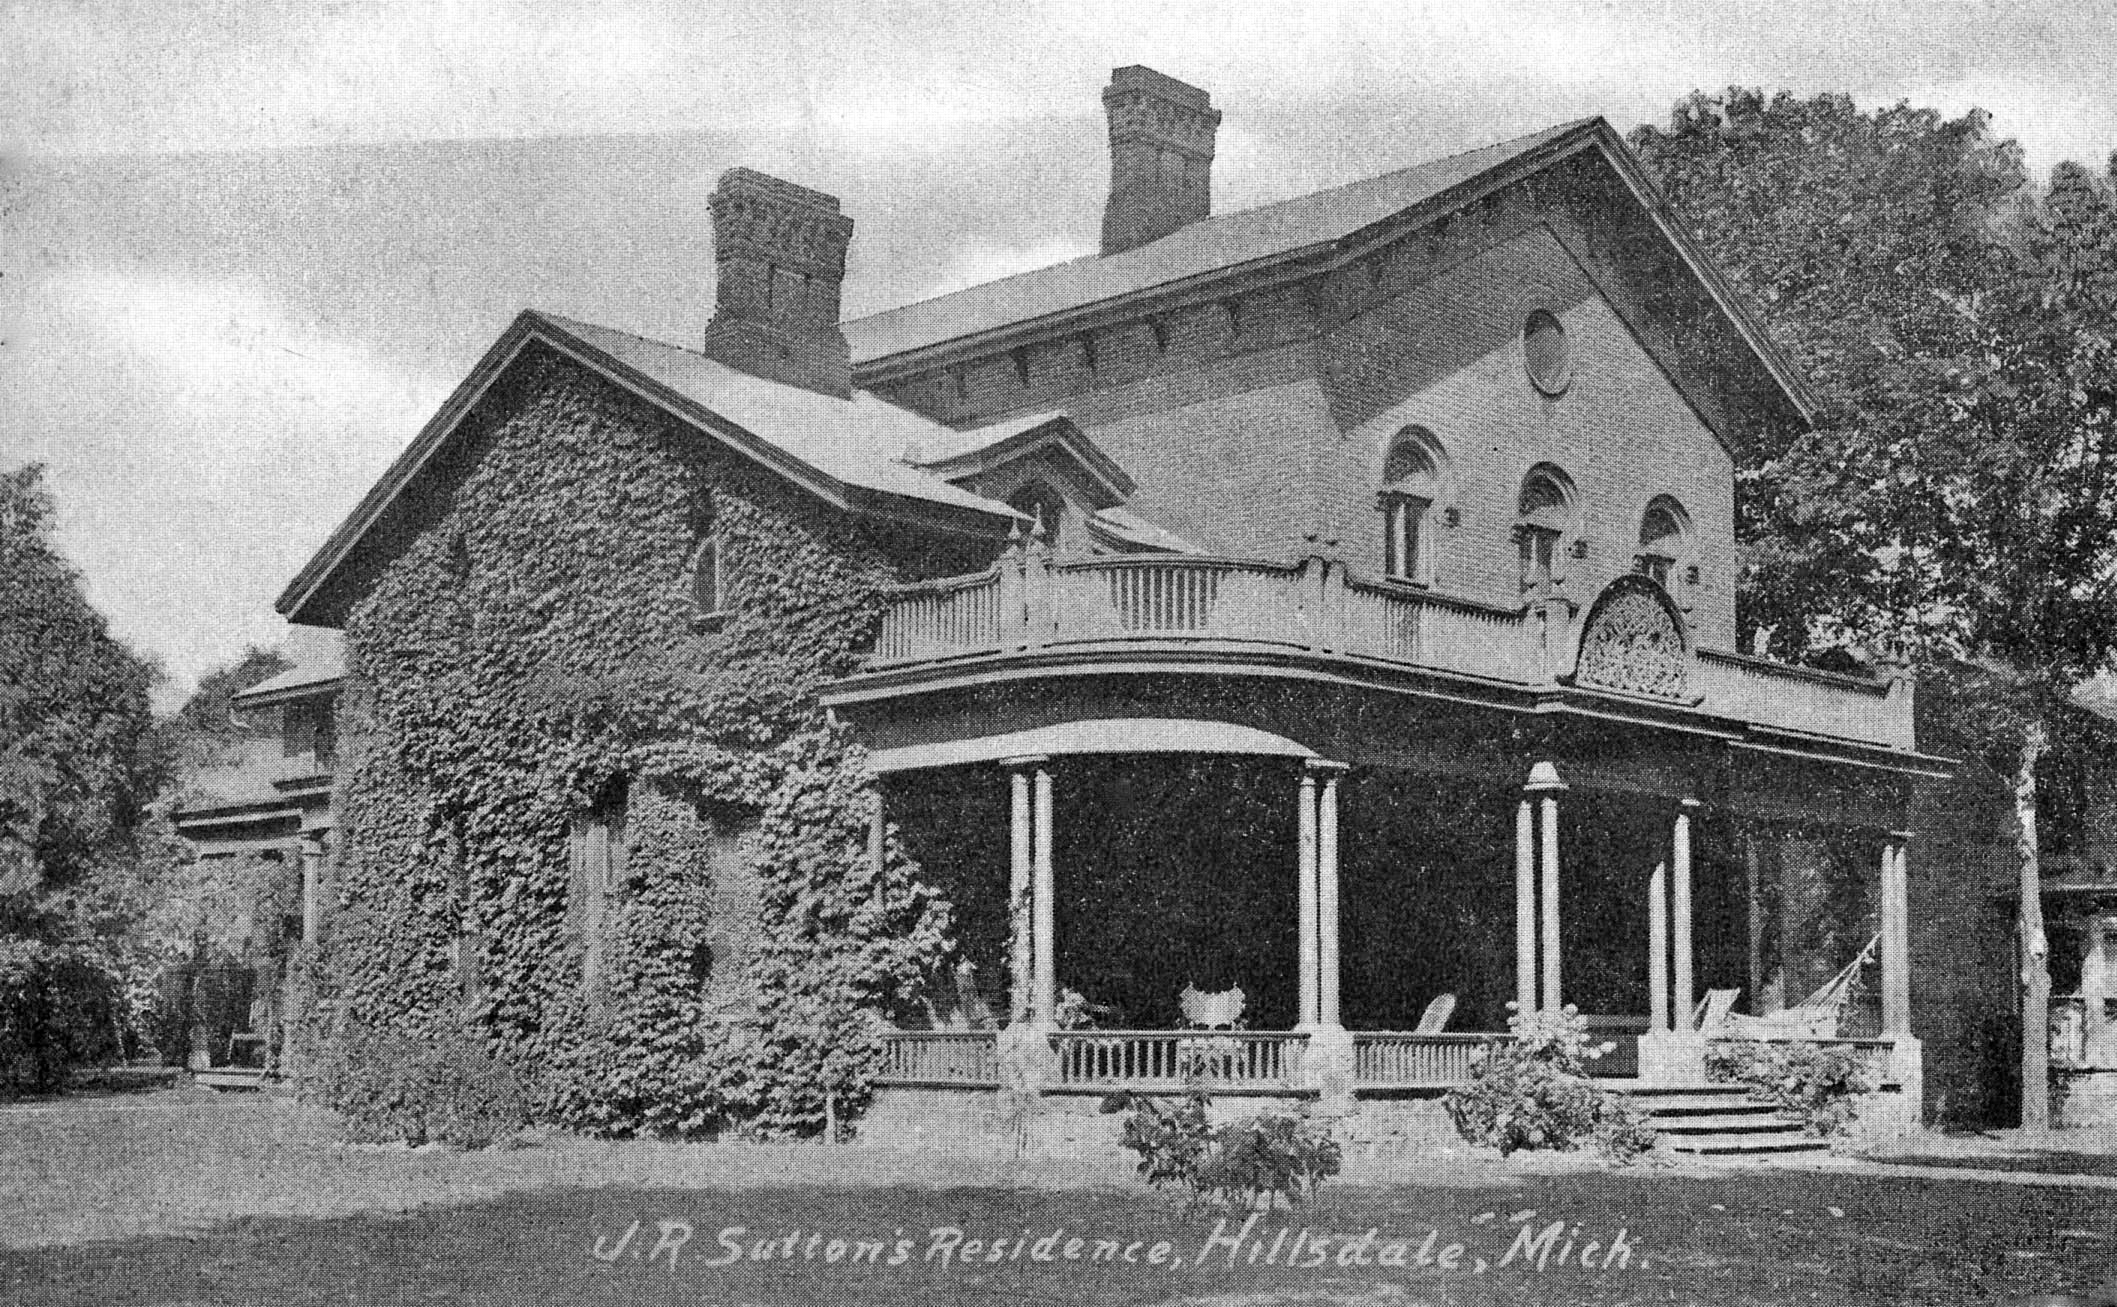 The John & Gertrude March Sutton Home